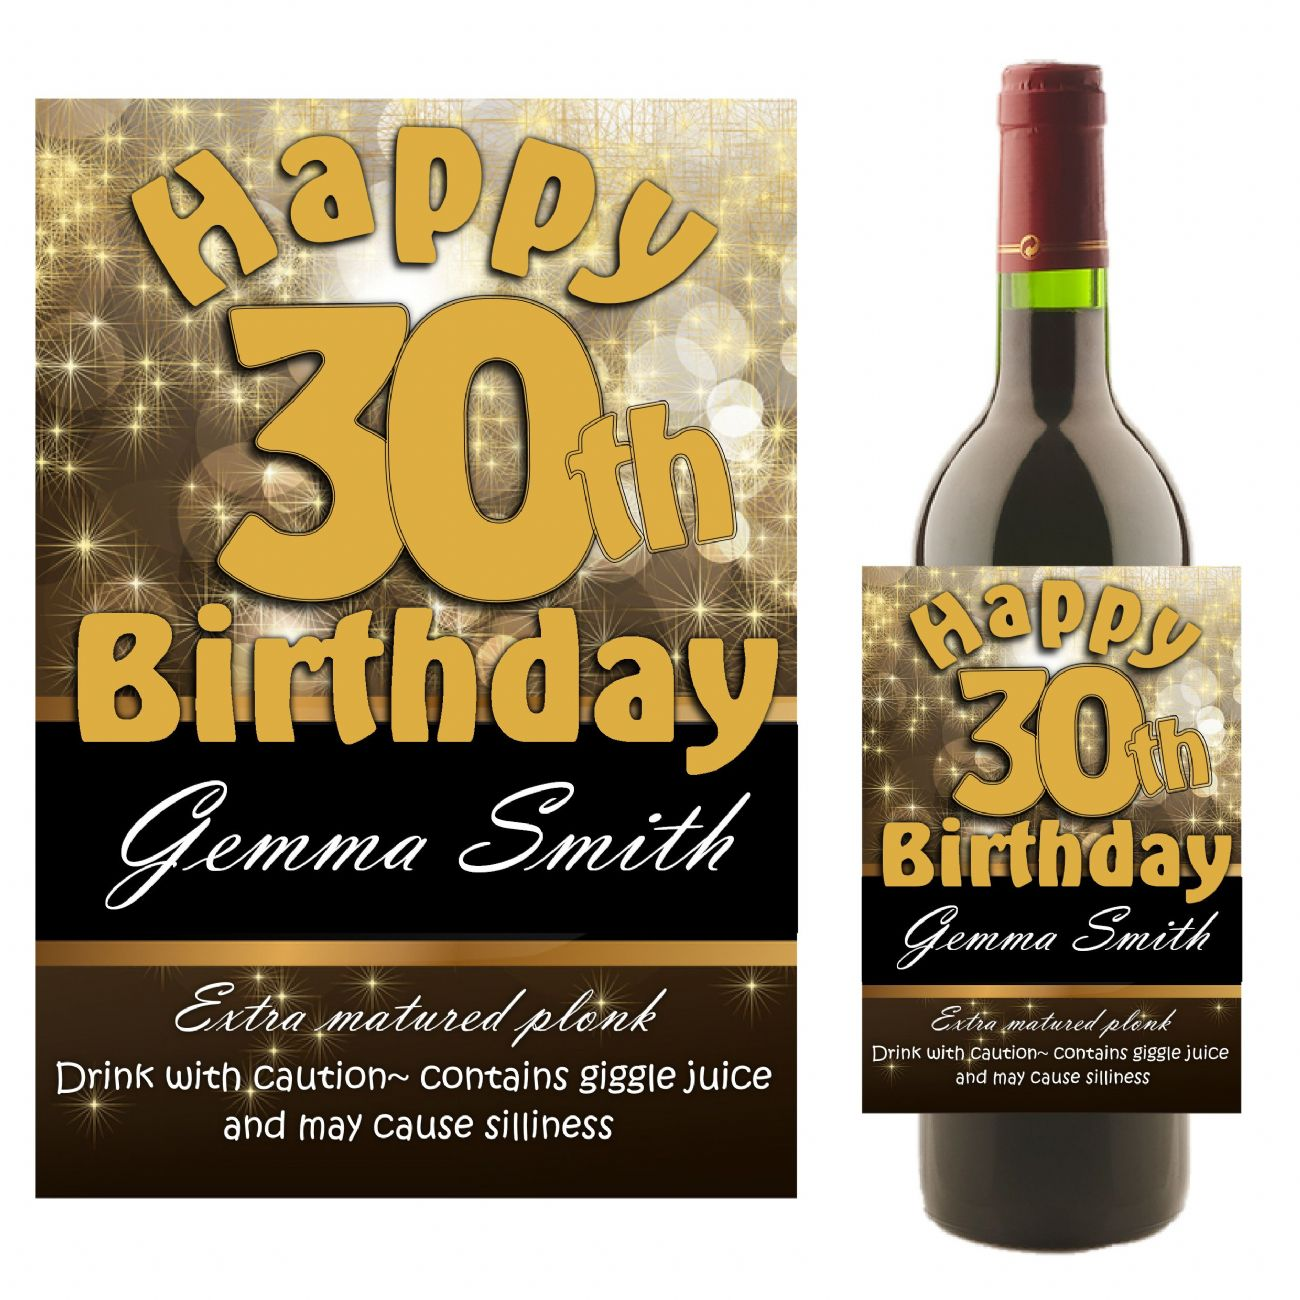 personalised birthday labels ; personalised-black-gold-happy-birthday-wine-champagne-bottle-label-n10-any-age-10824-p